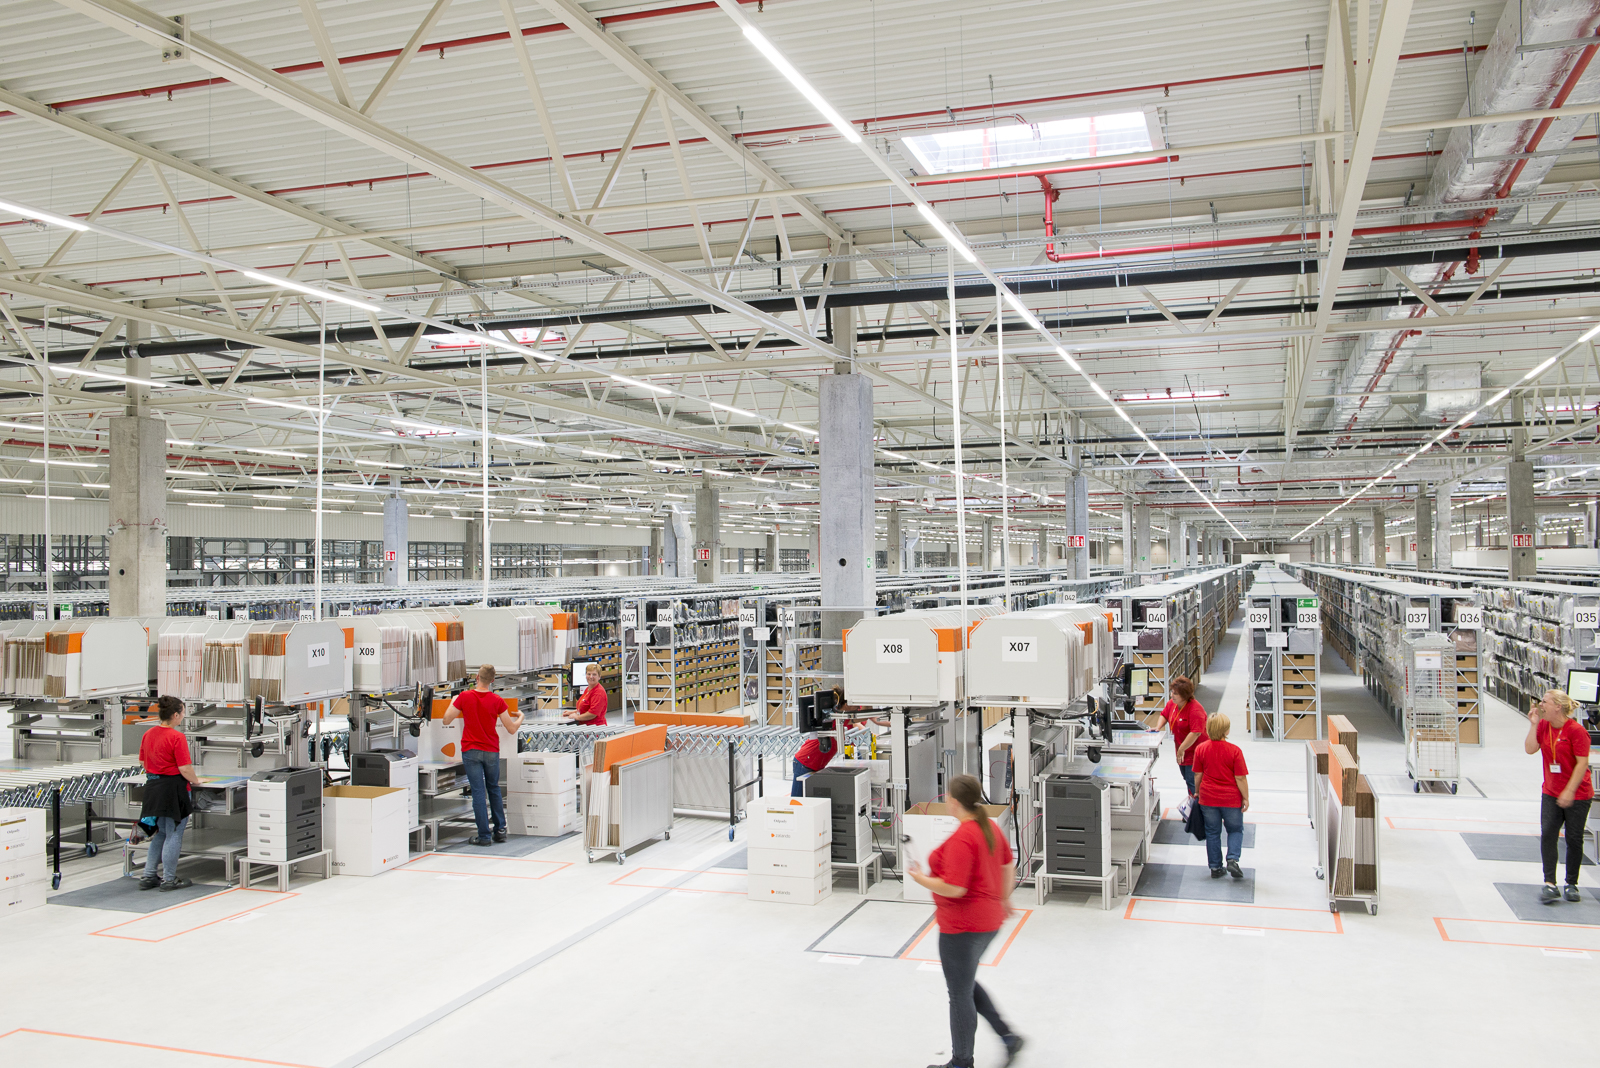 Zalando SE_Convenience_Logistics_Fulfillment centers_Szczecin_2